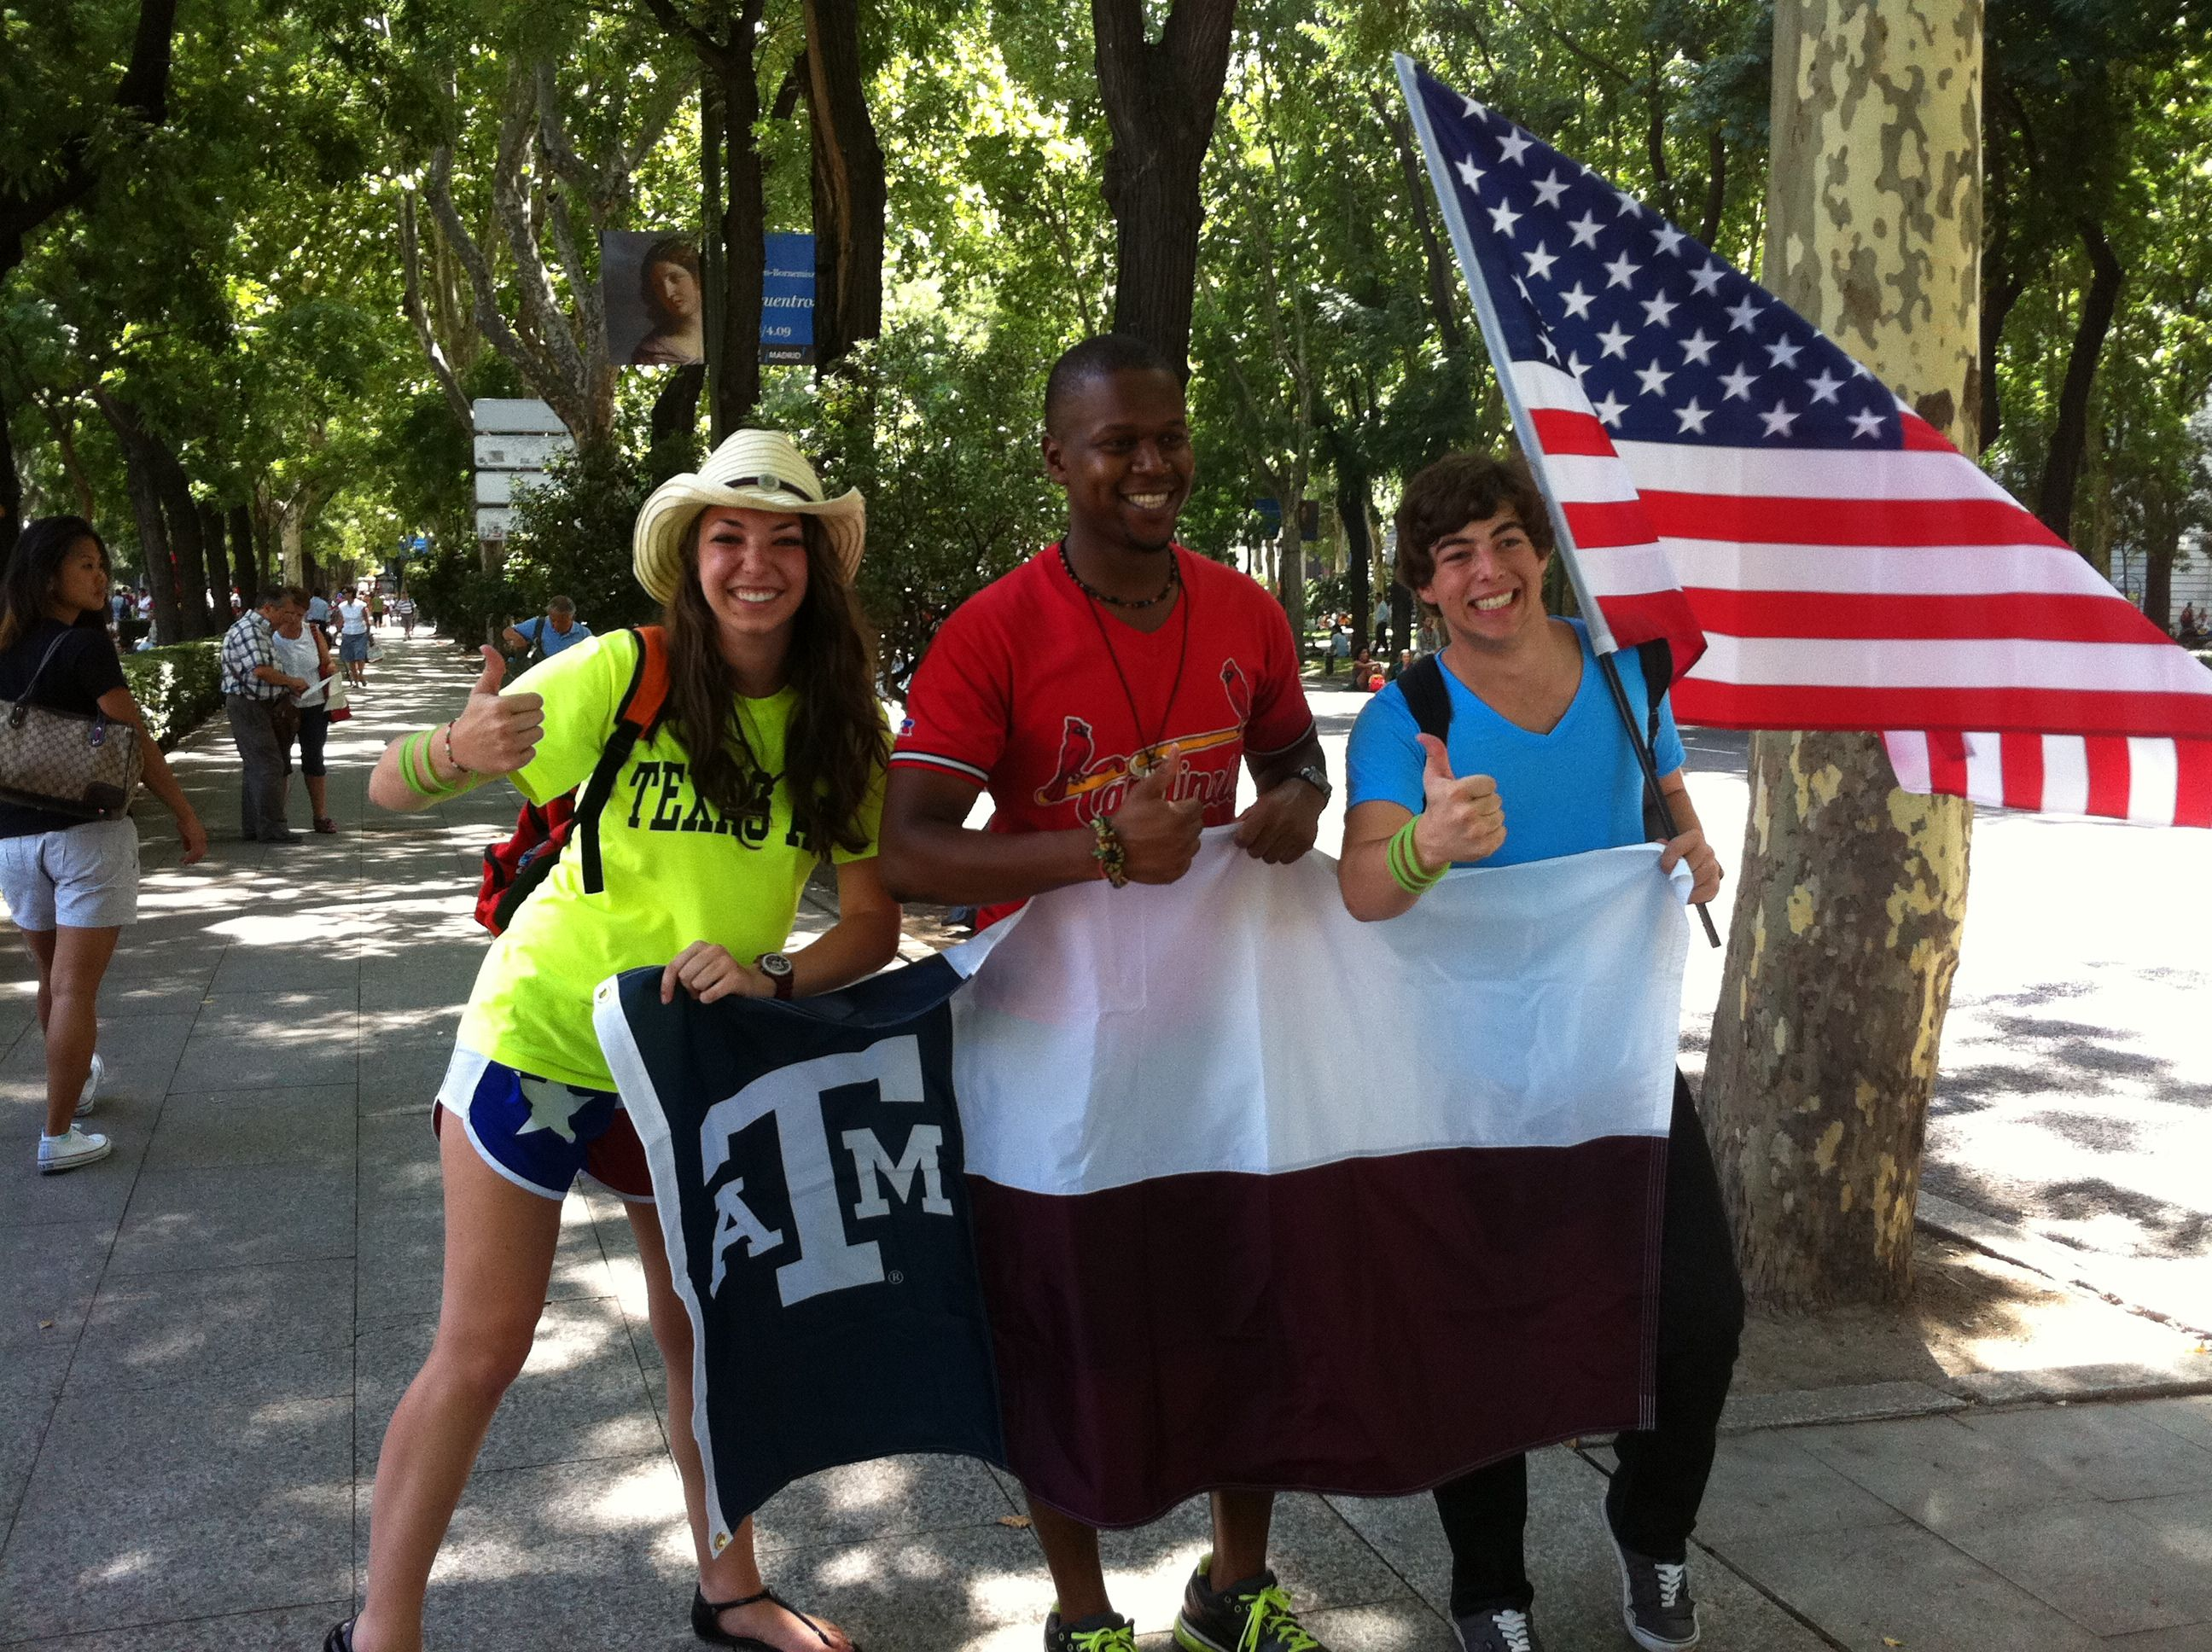 """My brother & I meeting another Aggie at World Youth Day in Madrid, Spain. You are supposed to bring costumes and flags from your home country- we chose TAMU. Also, we may or may not have told foreigners that is was the Texas flag and that all Texans say """"Howdy, gig 'em!""""  ;) This was one of several Aggies that we ran into."""